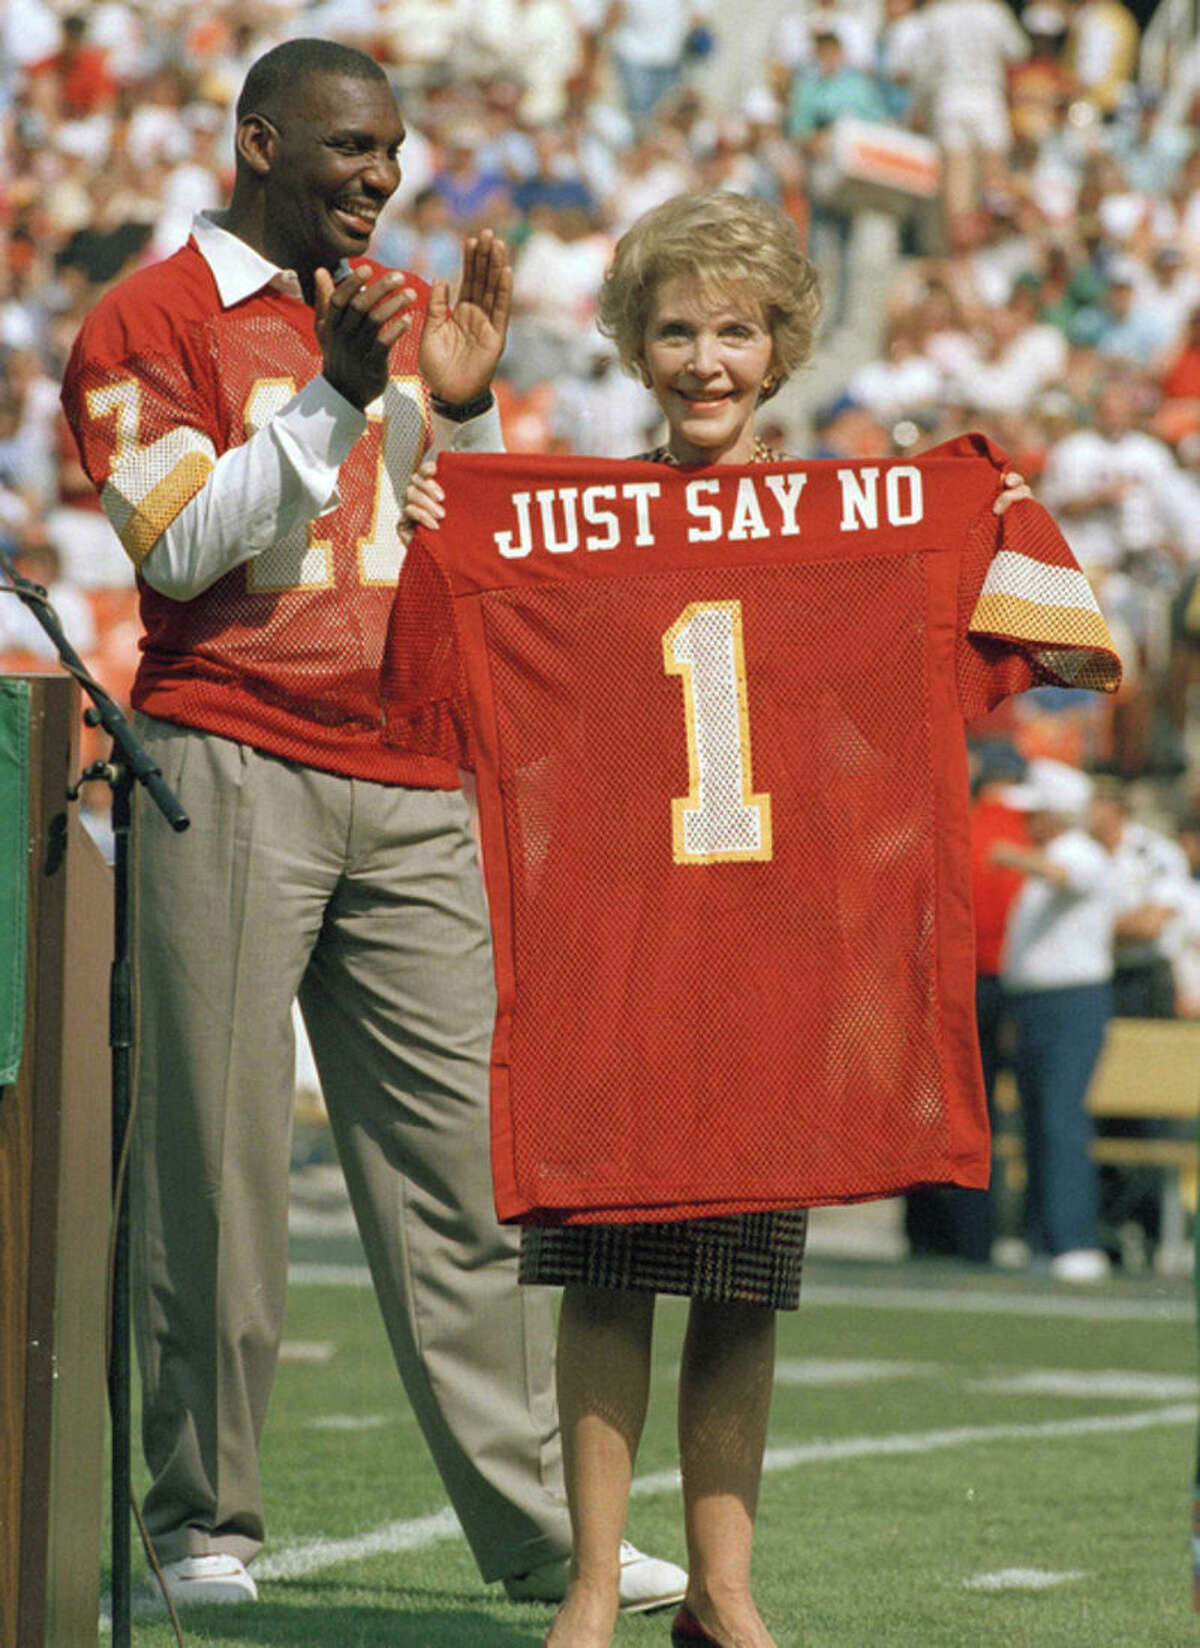 FILE - In this Oct. 2, 1988 file photo, Washington Redskins injured starting quarterback Doug Williams stands behind first lady Nancy Reagan holding a jersey he gave her before a football game against the New York Giants at RFK Stadium in Washington, D.C. The ceremony marked the Redskins' salute to her